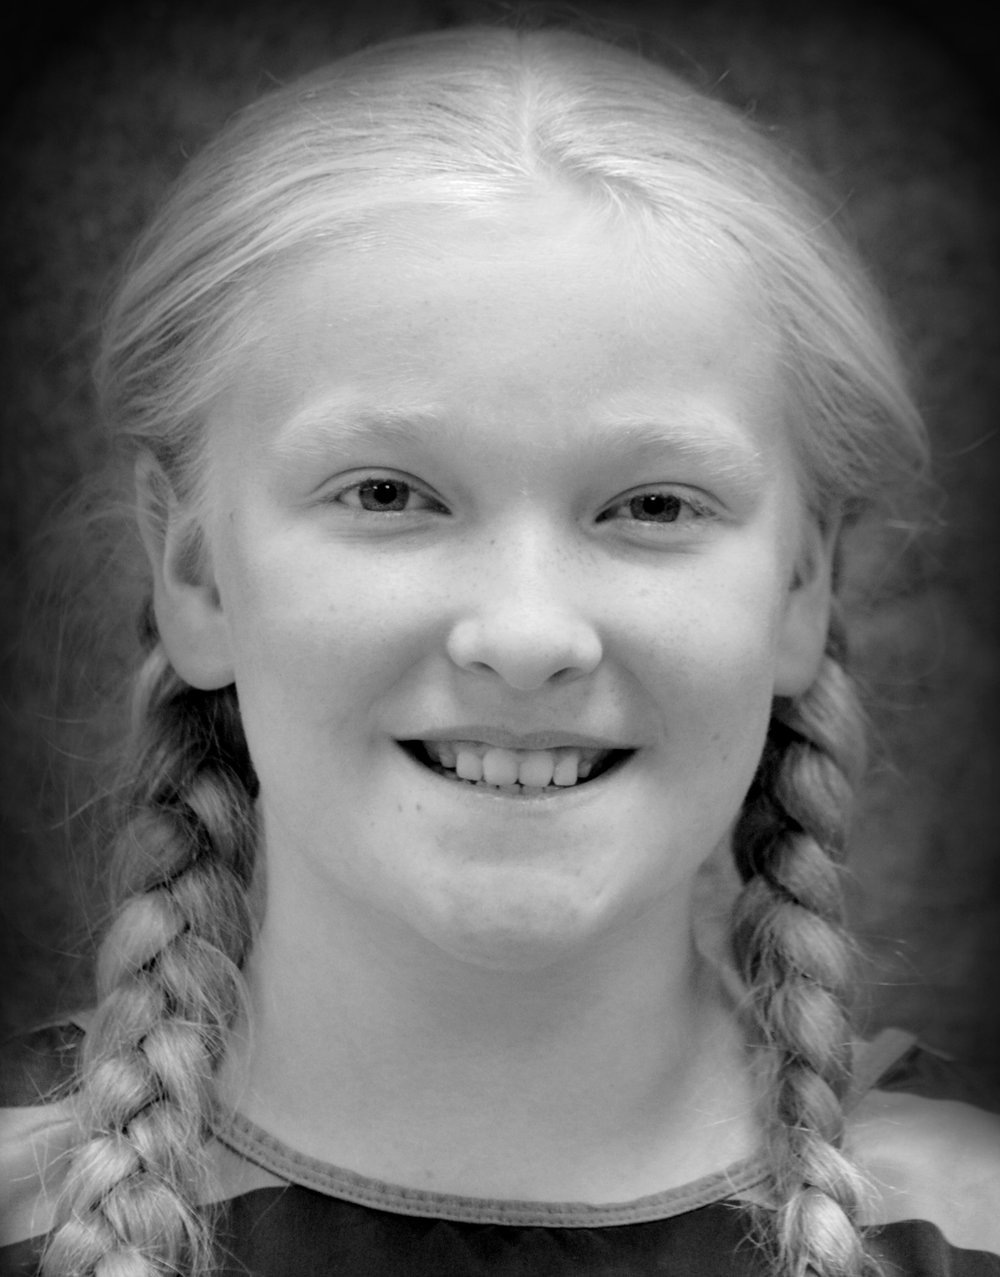 Blind School Stude  nt  //   Emalyn Kroeker   Emalyn Kroeker enjoys anything in the arts! Emalyn is a sixth grade homeschooler. She dances ballet, modern, and hip hop with En Croix and acts with Fire and Light, recently playing Suzie in  The Hundred Dresses . She has performed four shows with Kinetic Revelation. She greatly enjoys art, especially painting, drawing, crocheting, and sewing. Emalyn also studies violin, guitar and piano with KHA Strings, and Latin and English with Kroeker Homeschool Academy.